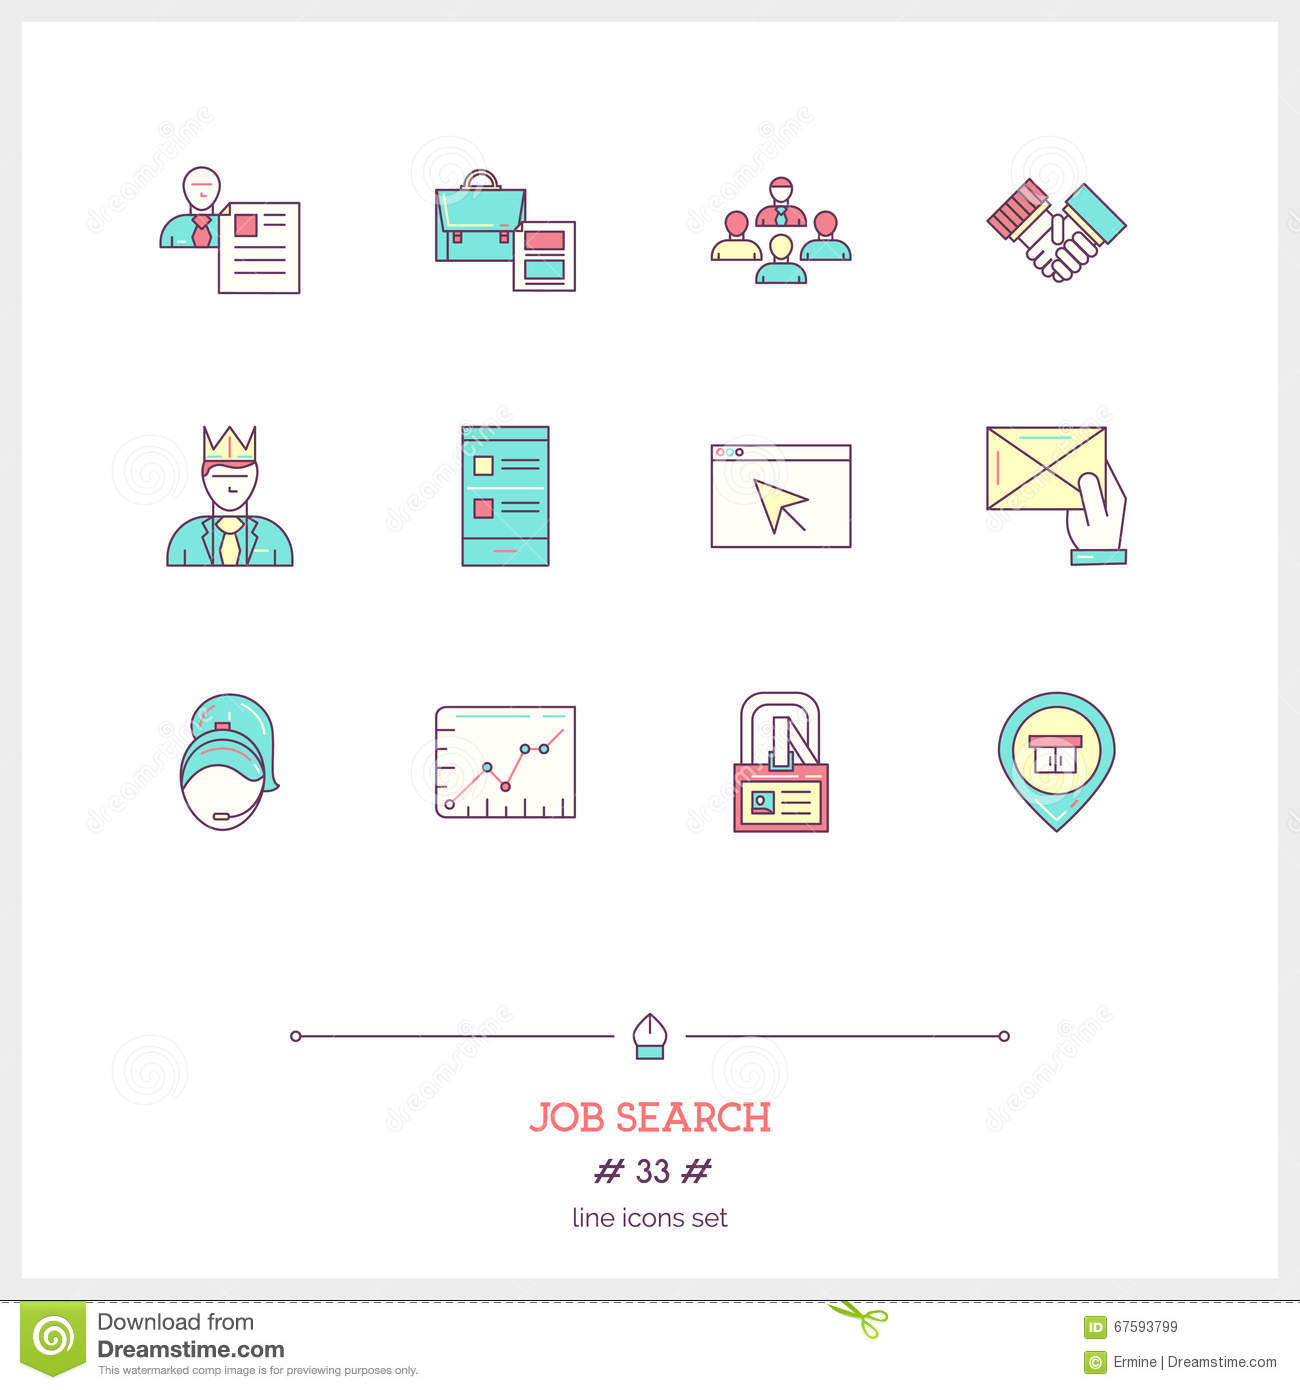 color line icon set of job search and human resources objects t color line icon set of job search and human resources objects t illustration 67593799 megapixl